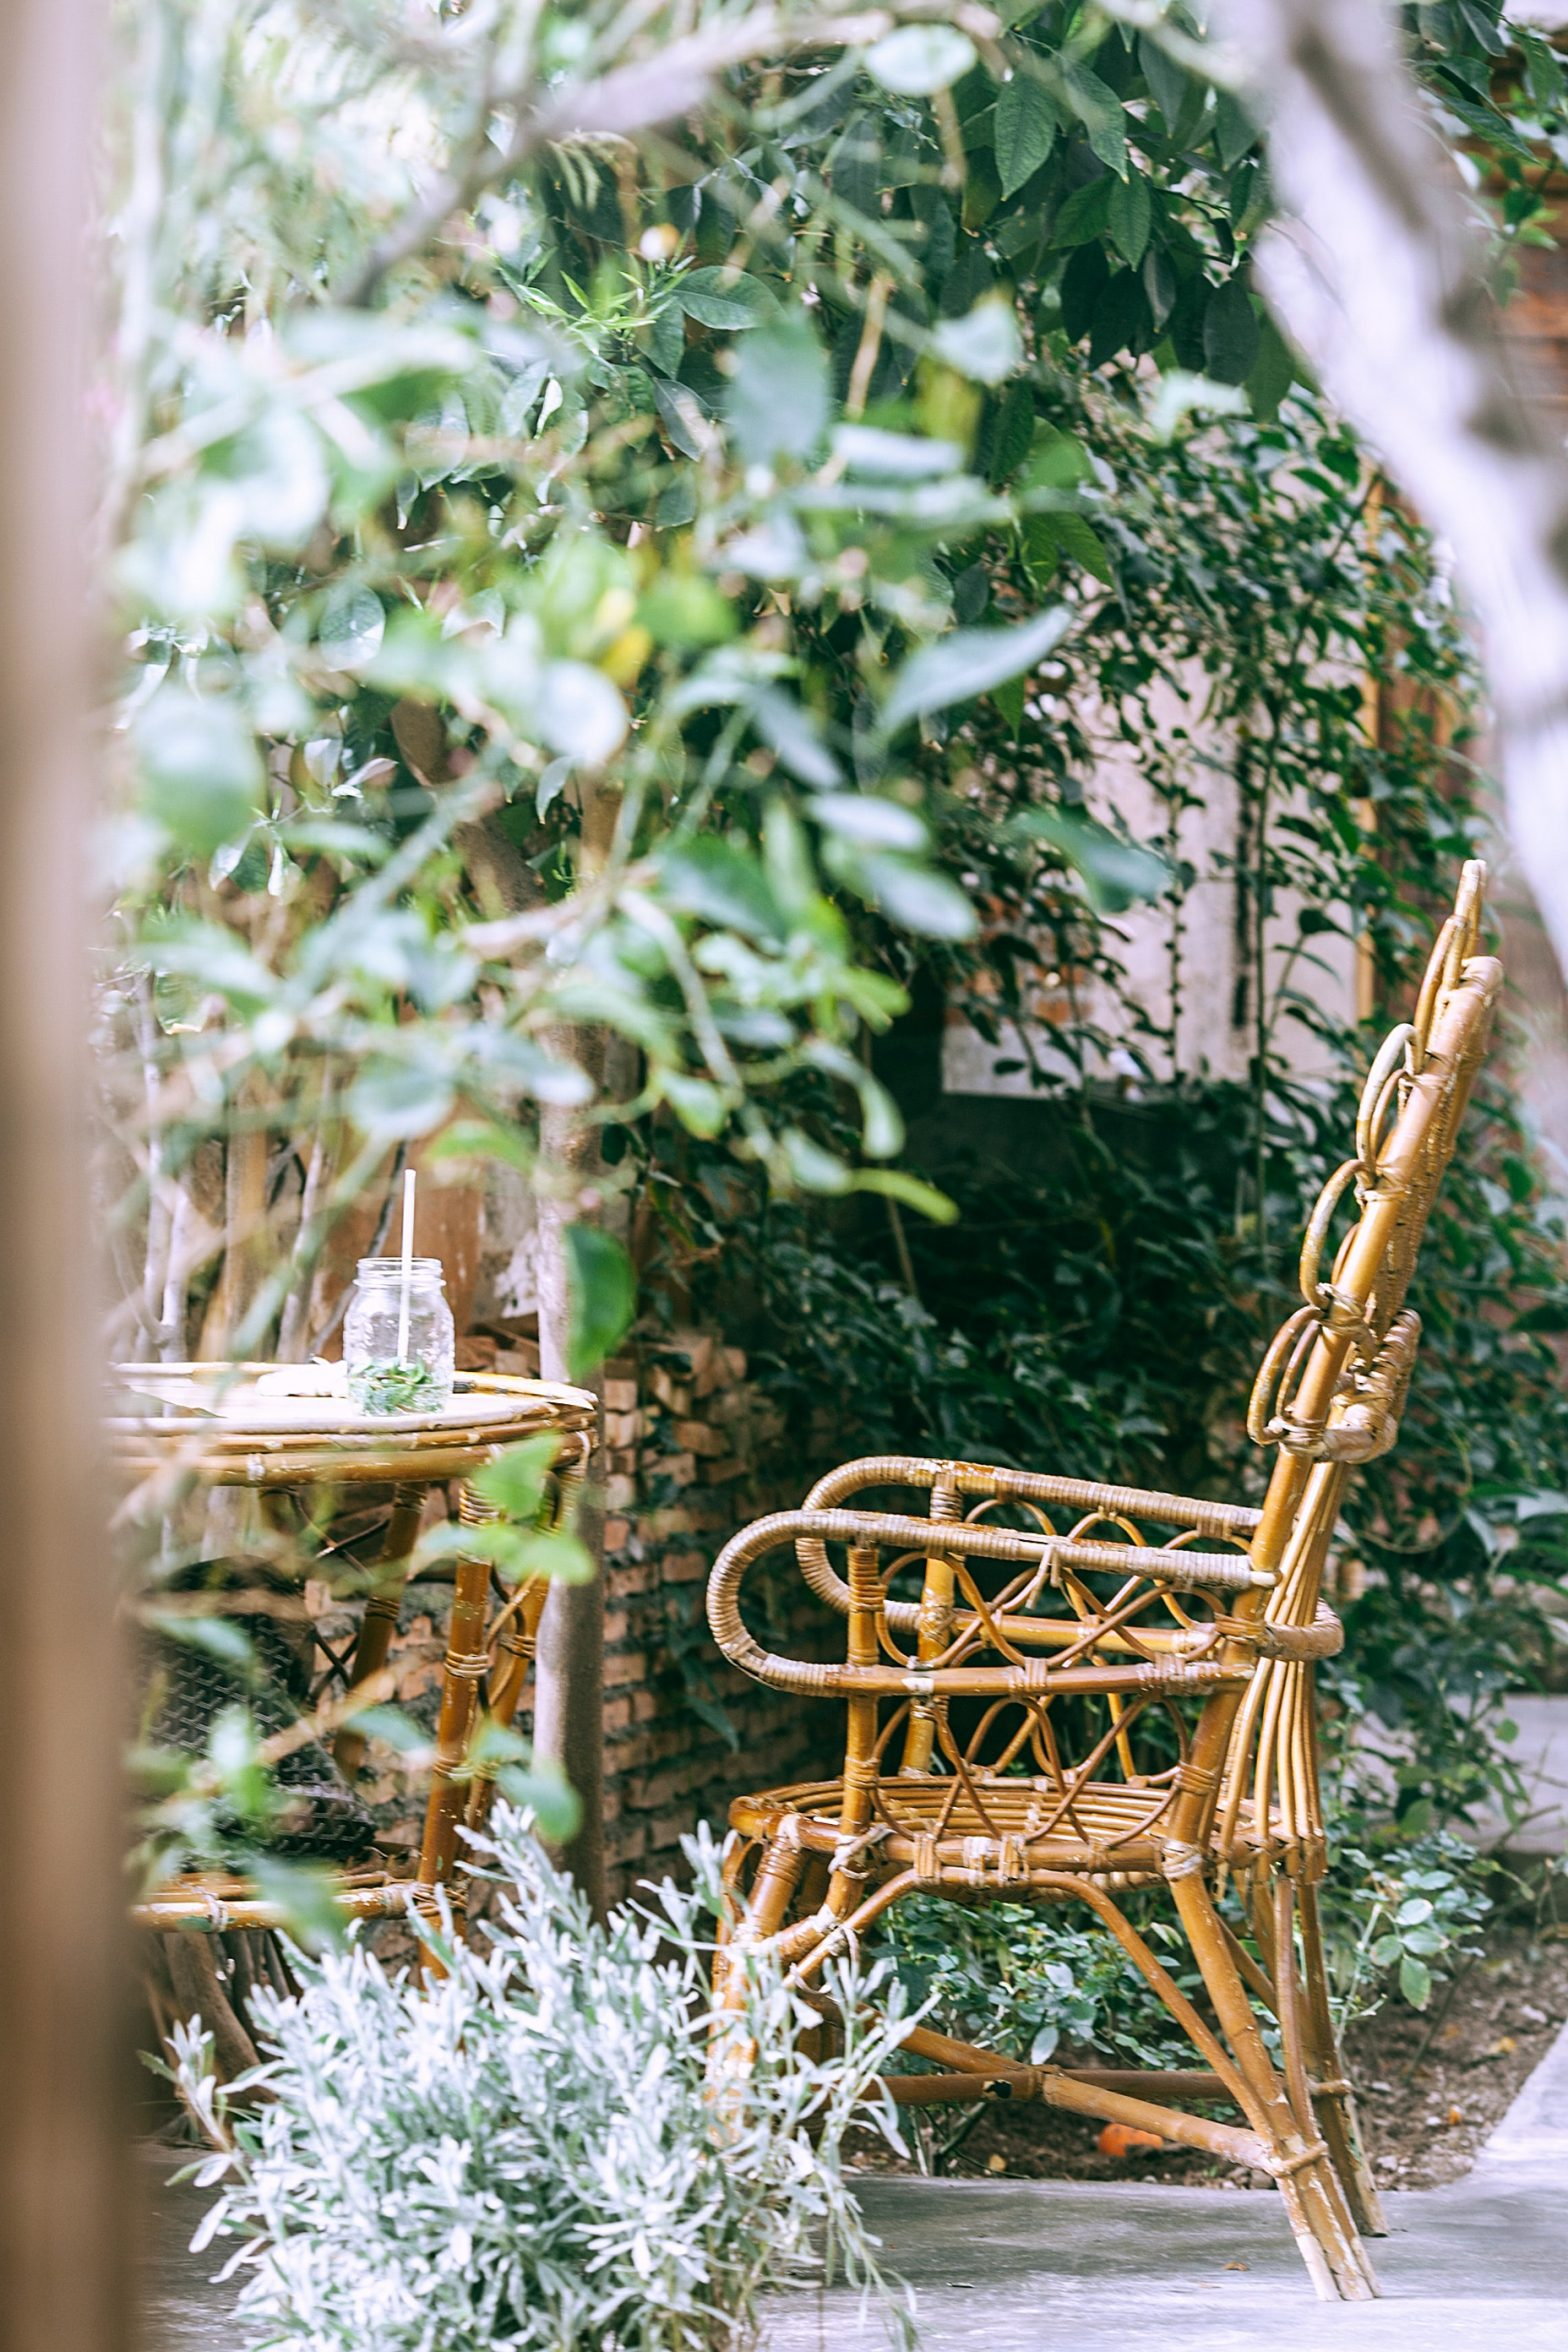 7 Ways to Make Your Small Yard More Luxurious and Relaxing